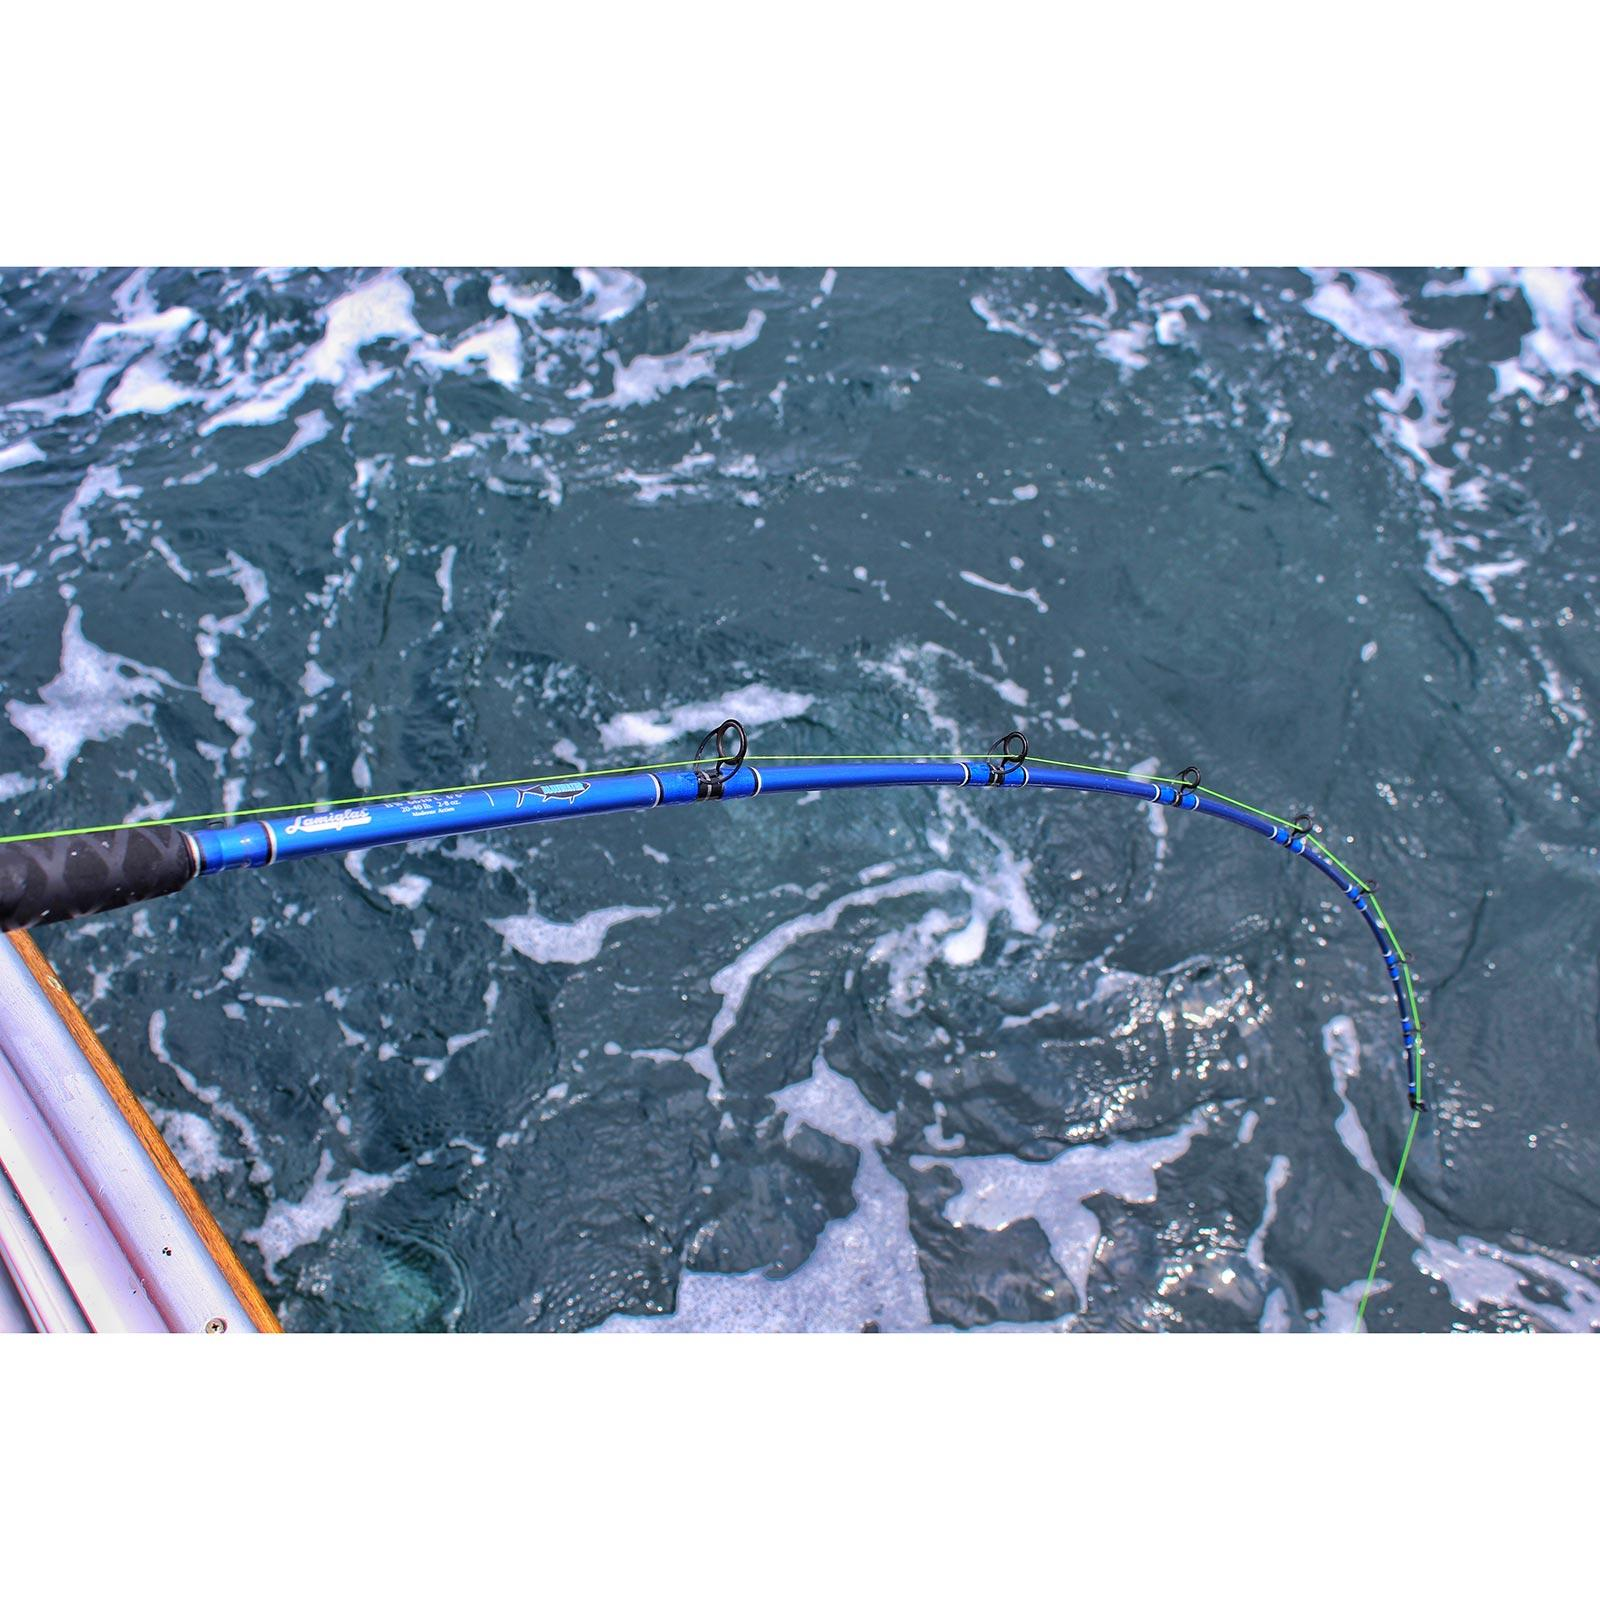 Lamiglas Bluewater Spinning Rod - In Use View